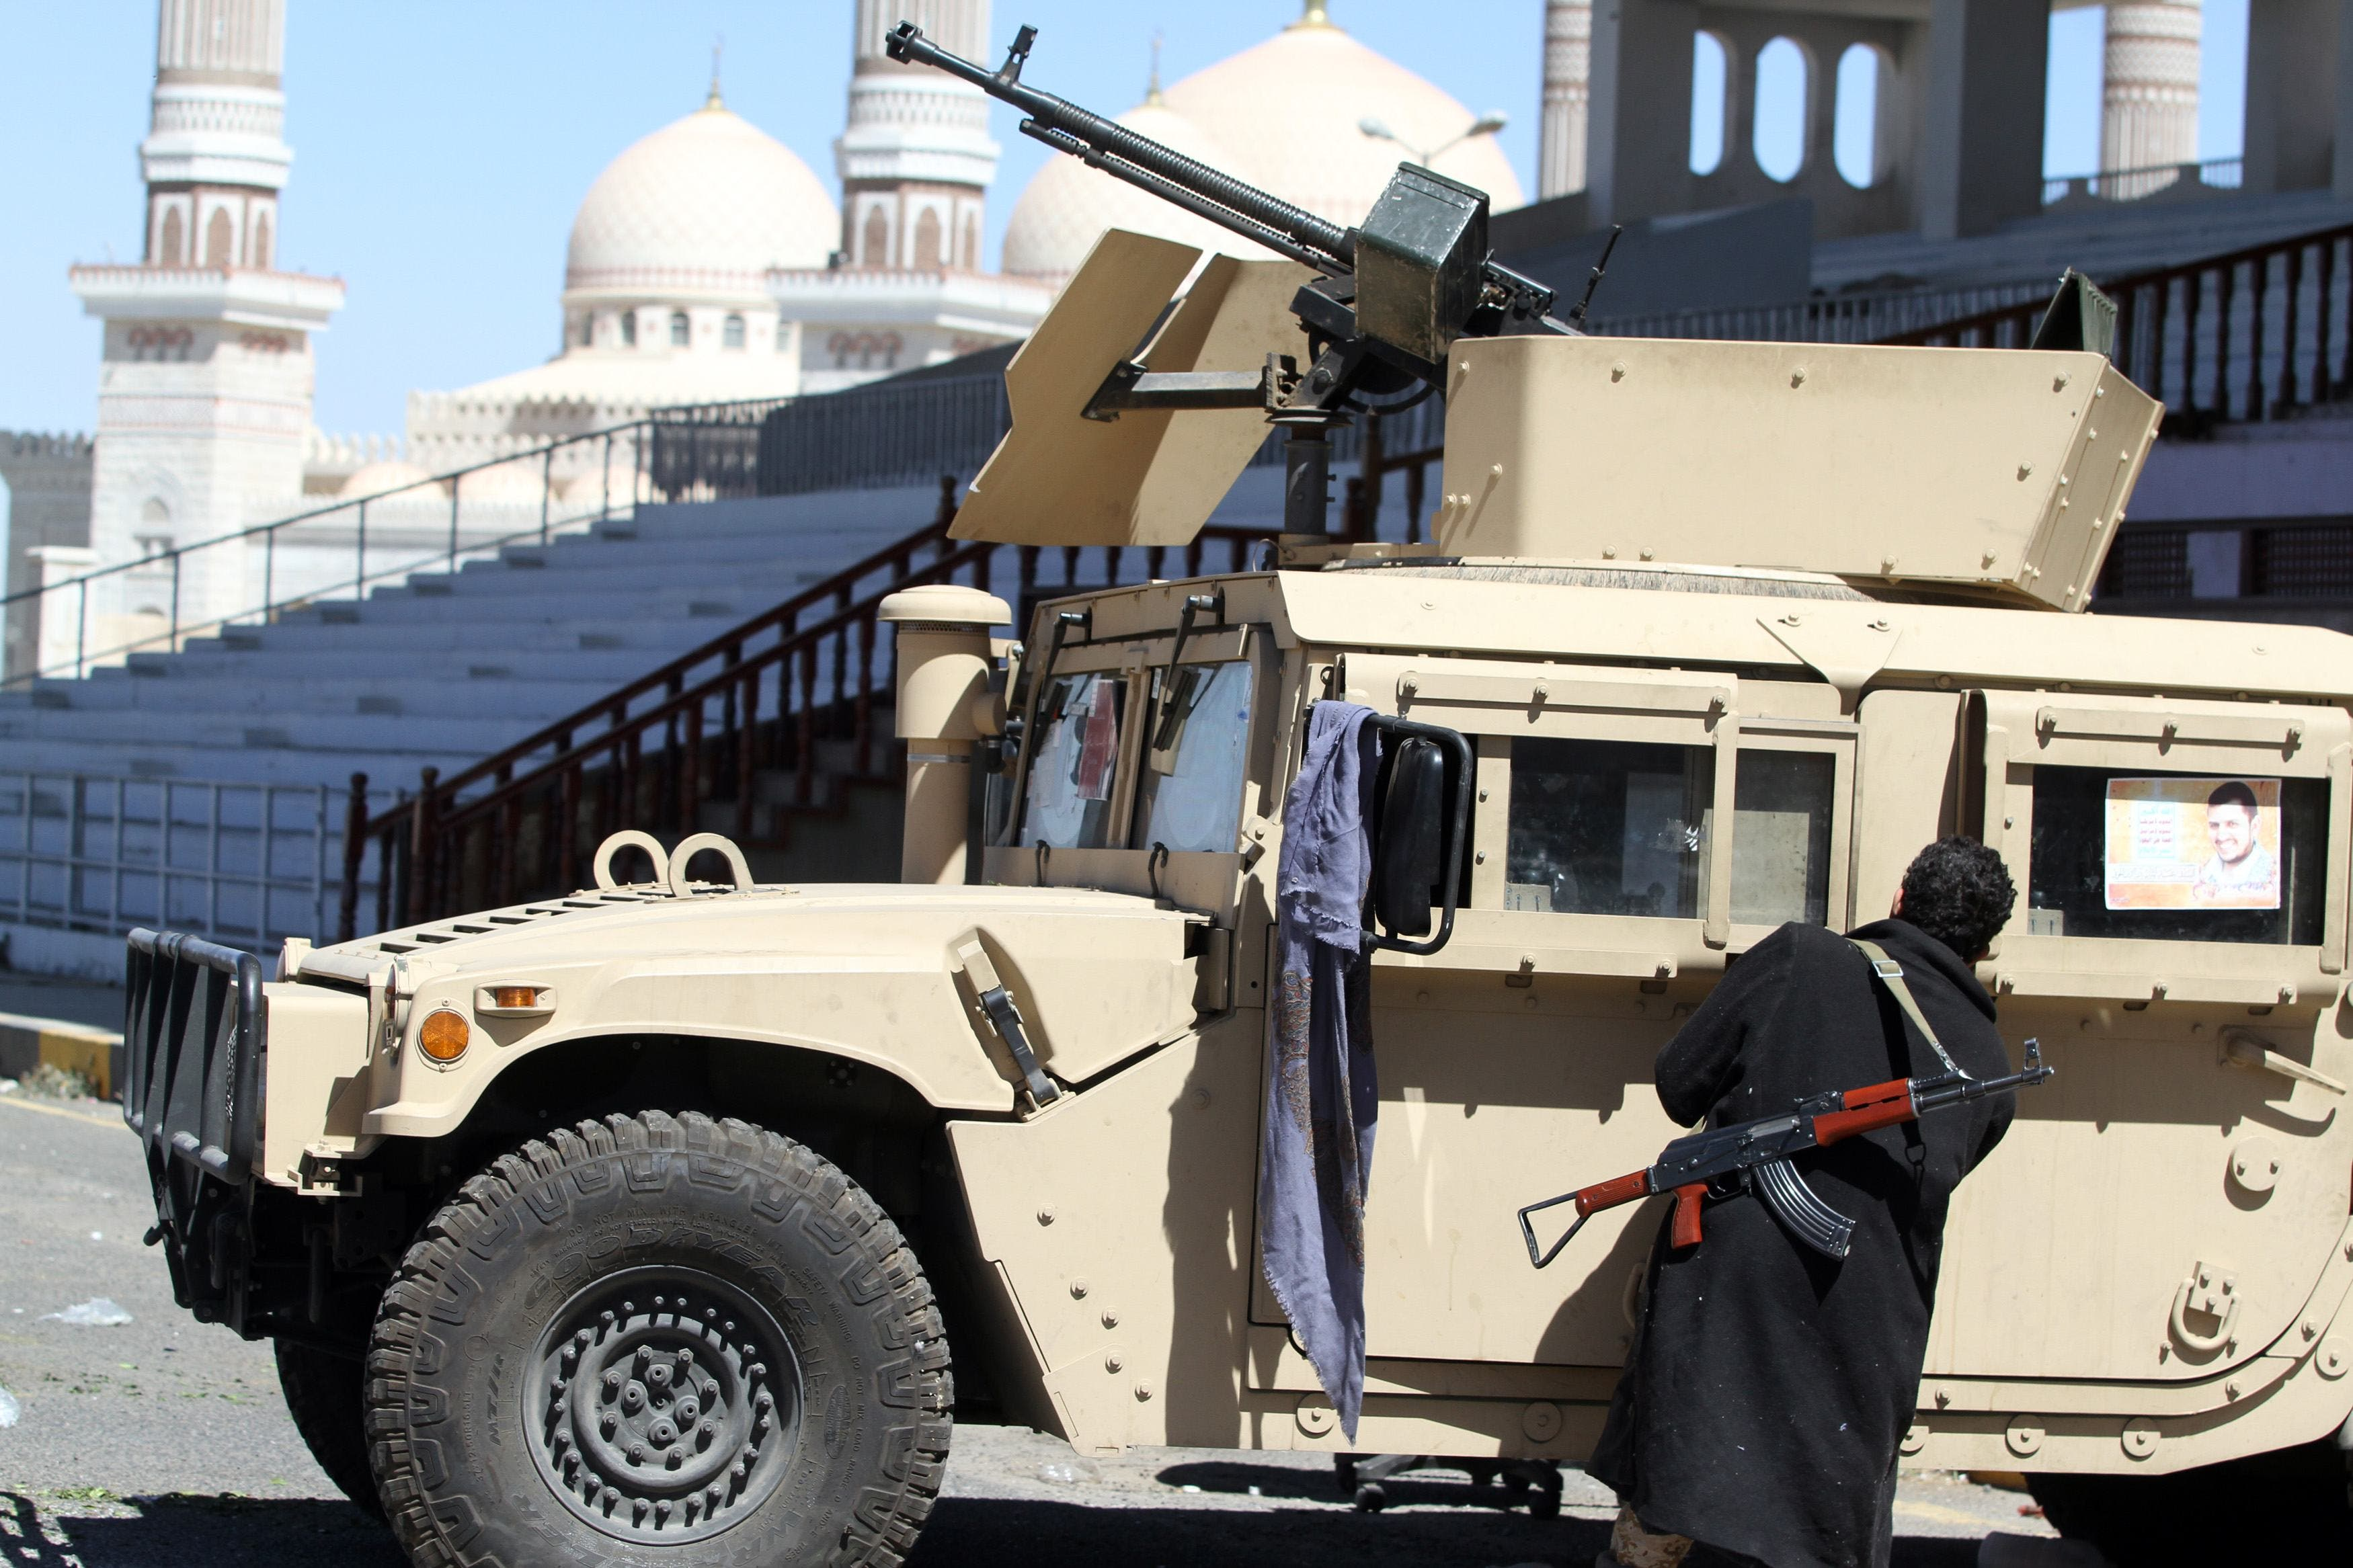 A Houthi fighter opens the door of a military vehicle which was seized from the army during recent clashes, outside an entrance to the presidential palace in Sanaa January 29, 2015. (Reuters)